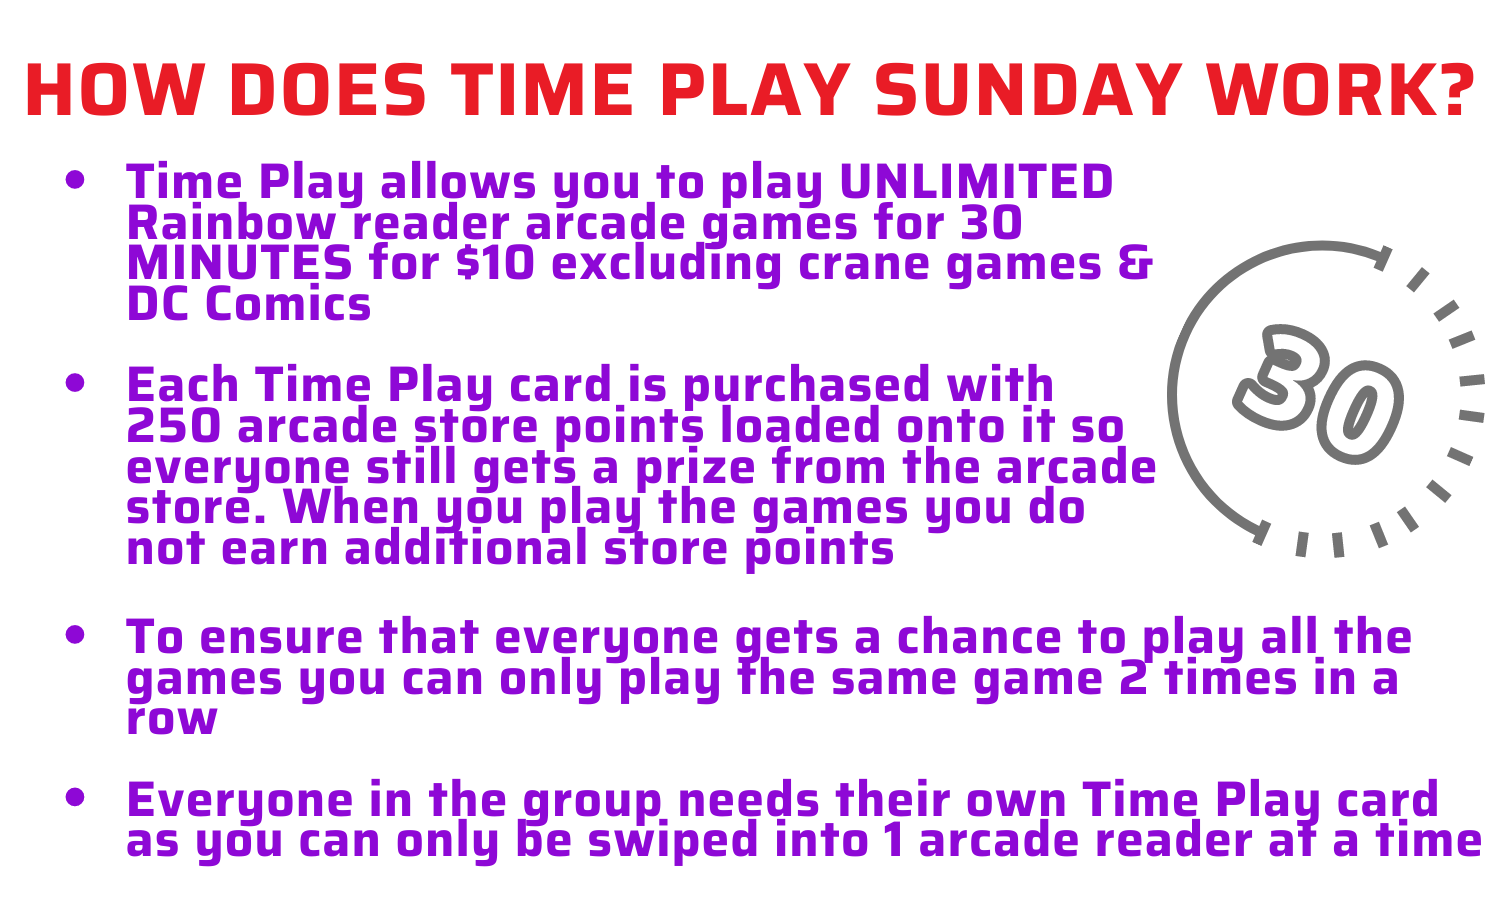 How does time play sunday work